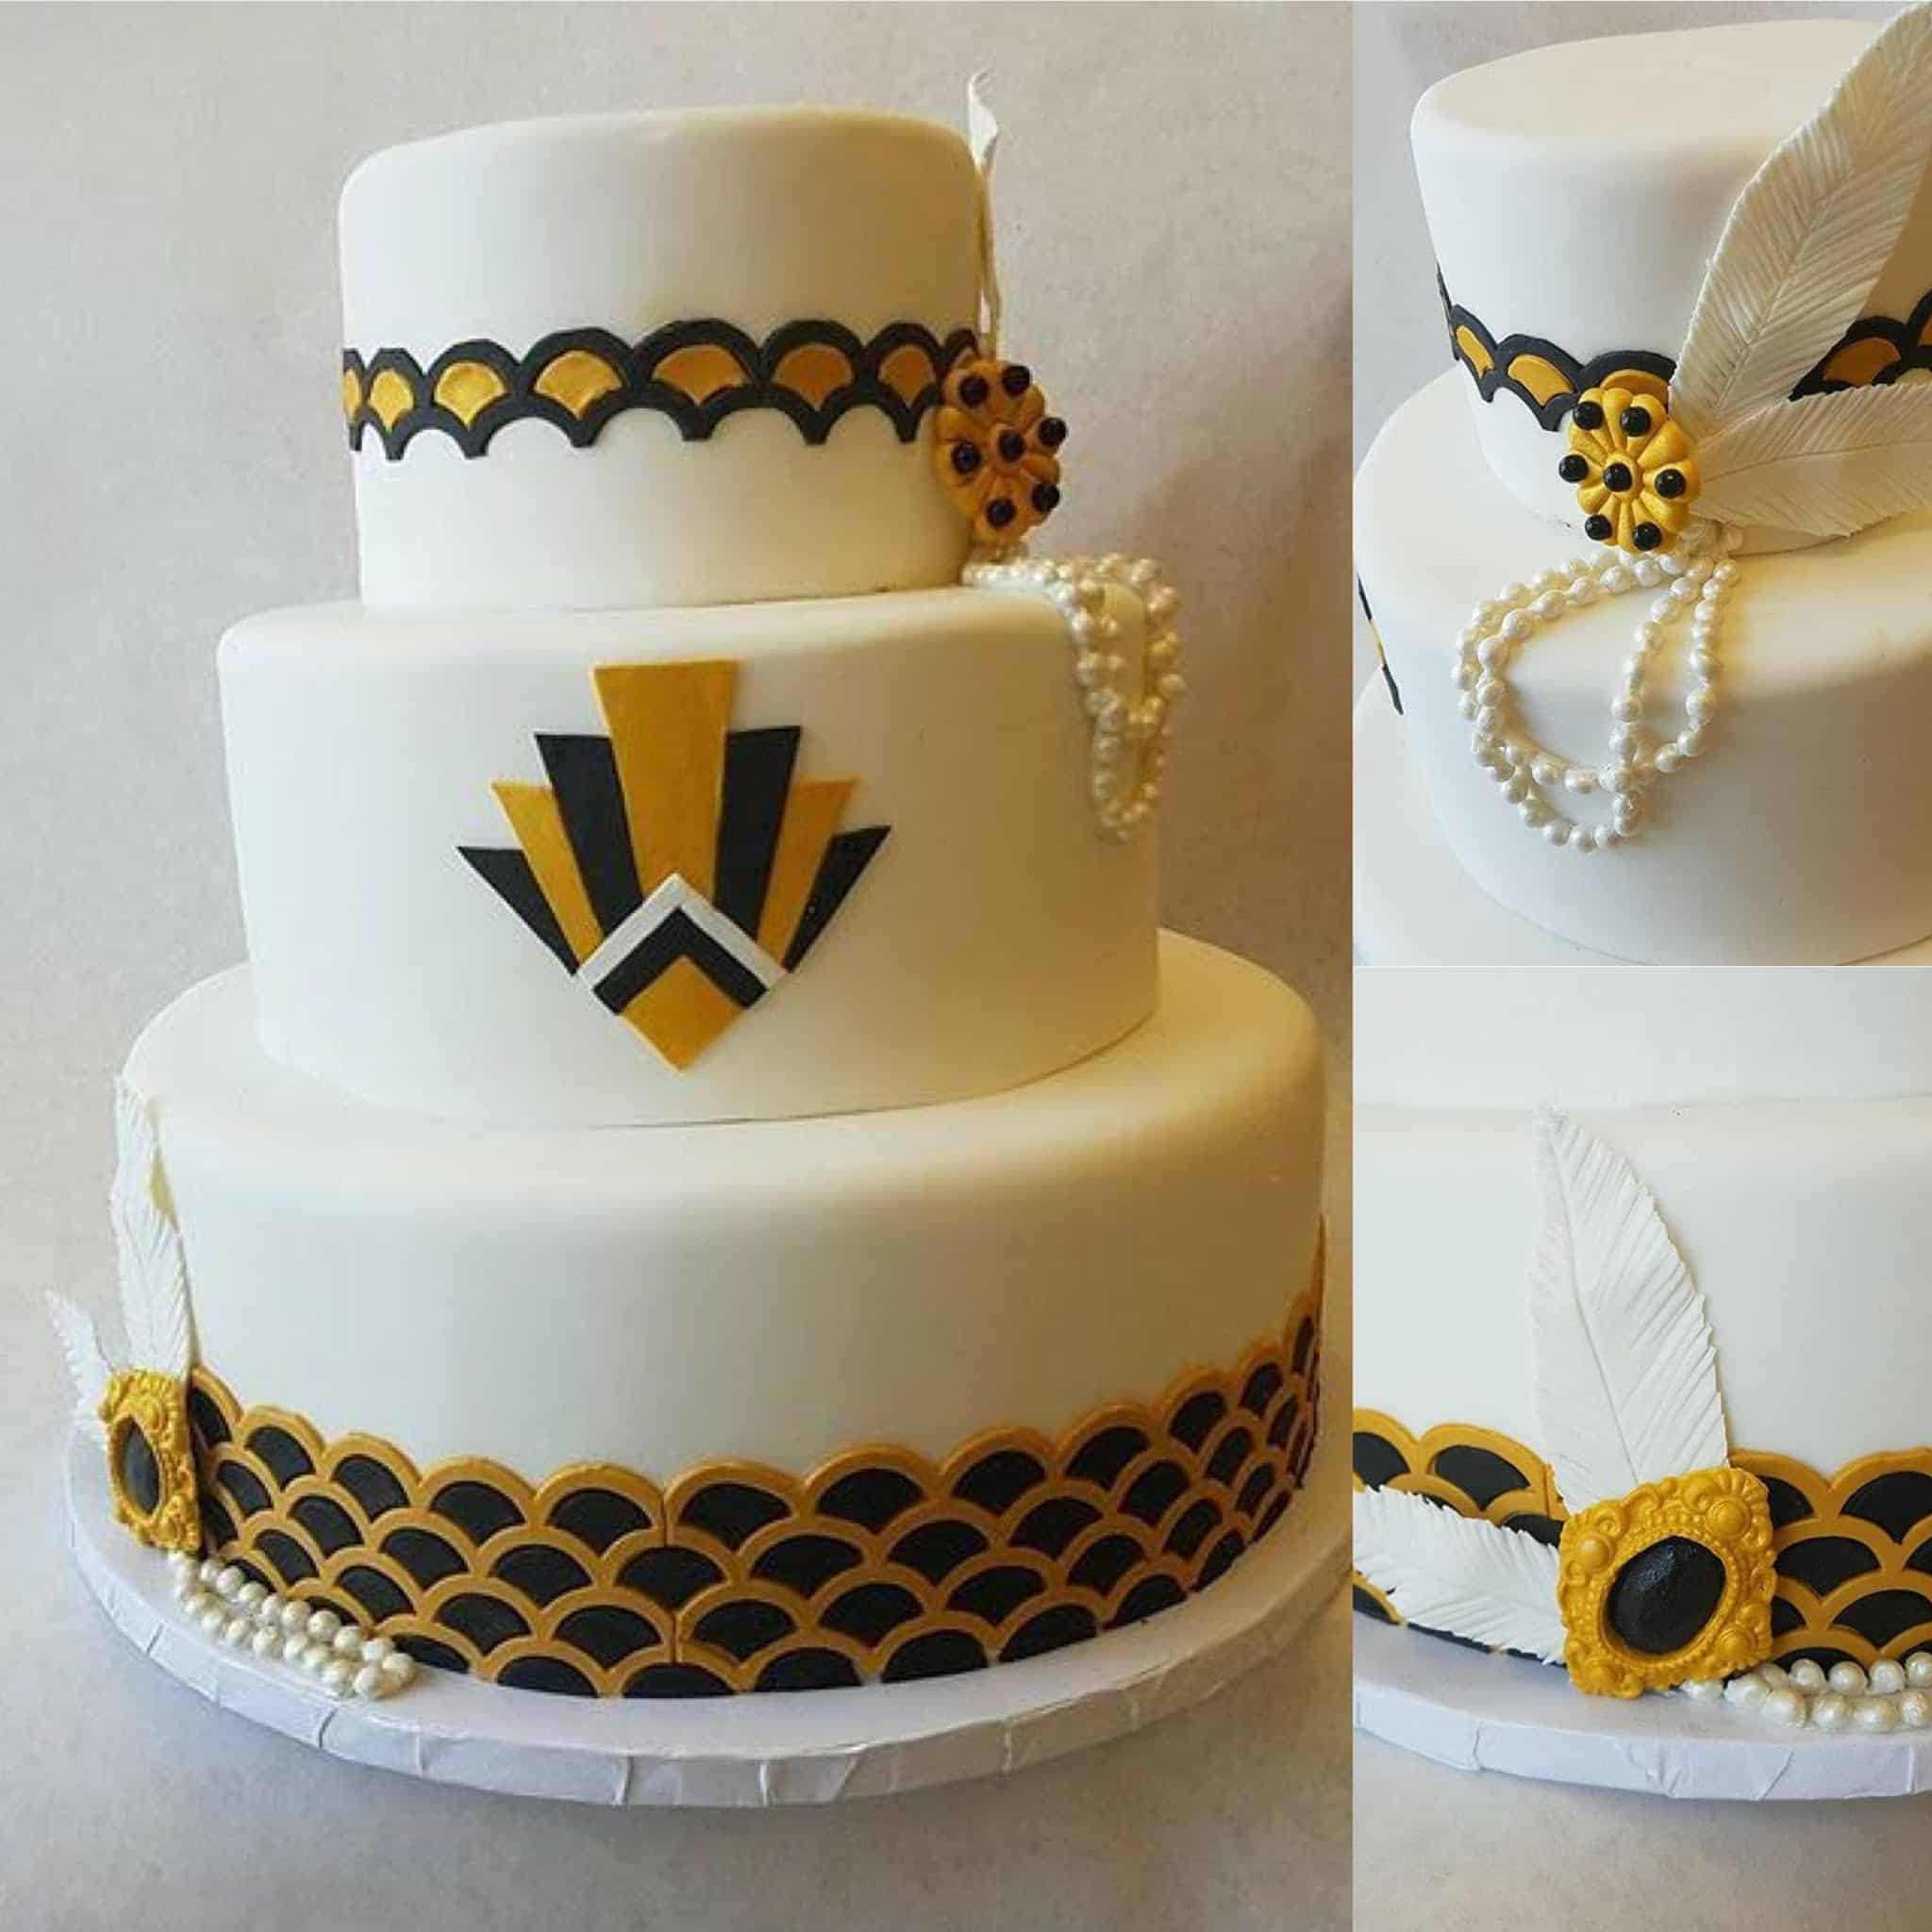 Great Gatsby Themed Black and Gold Cake